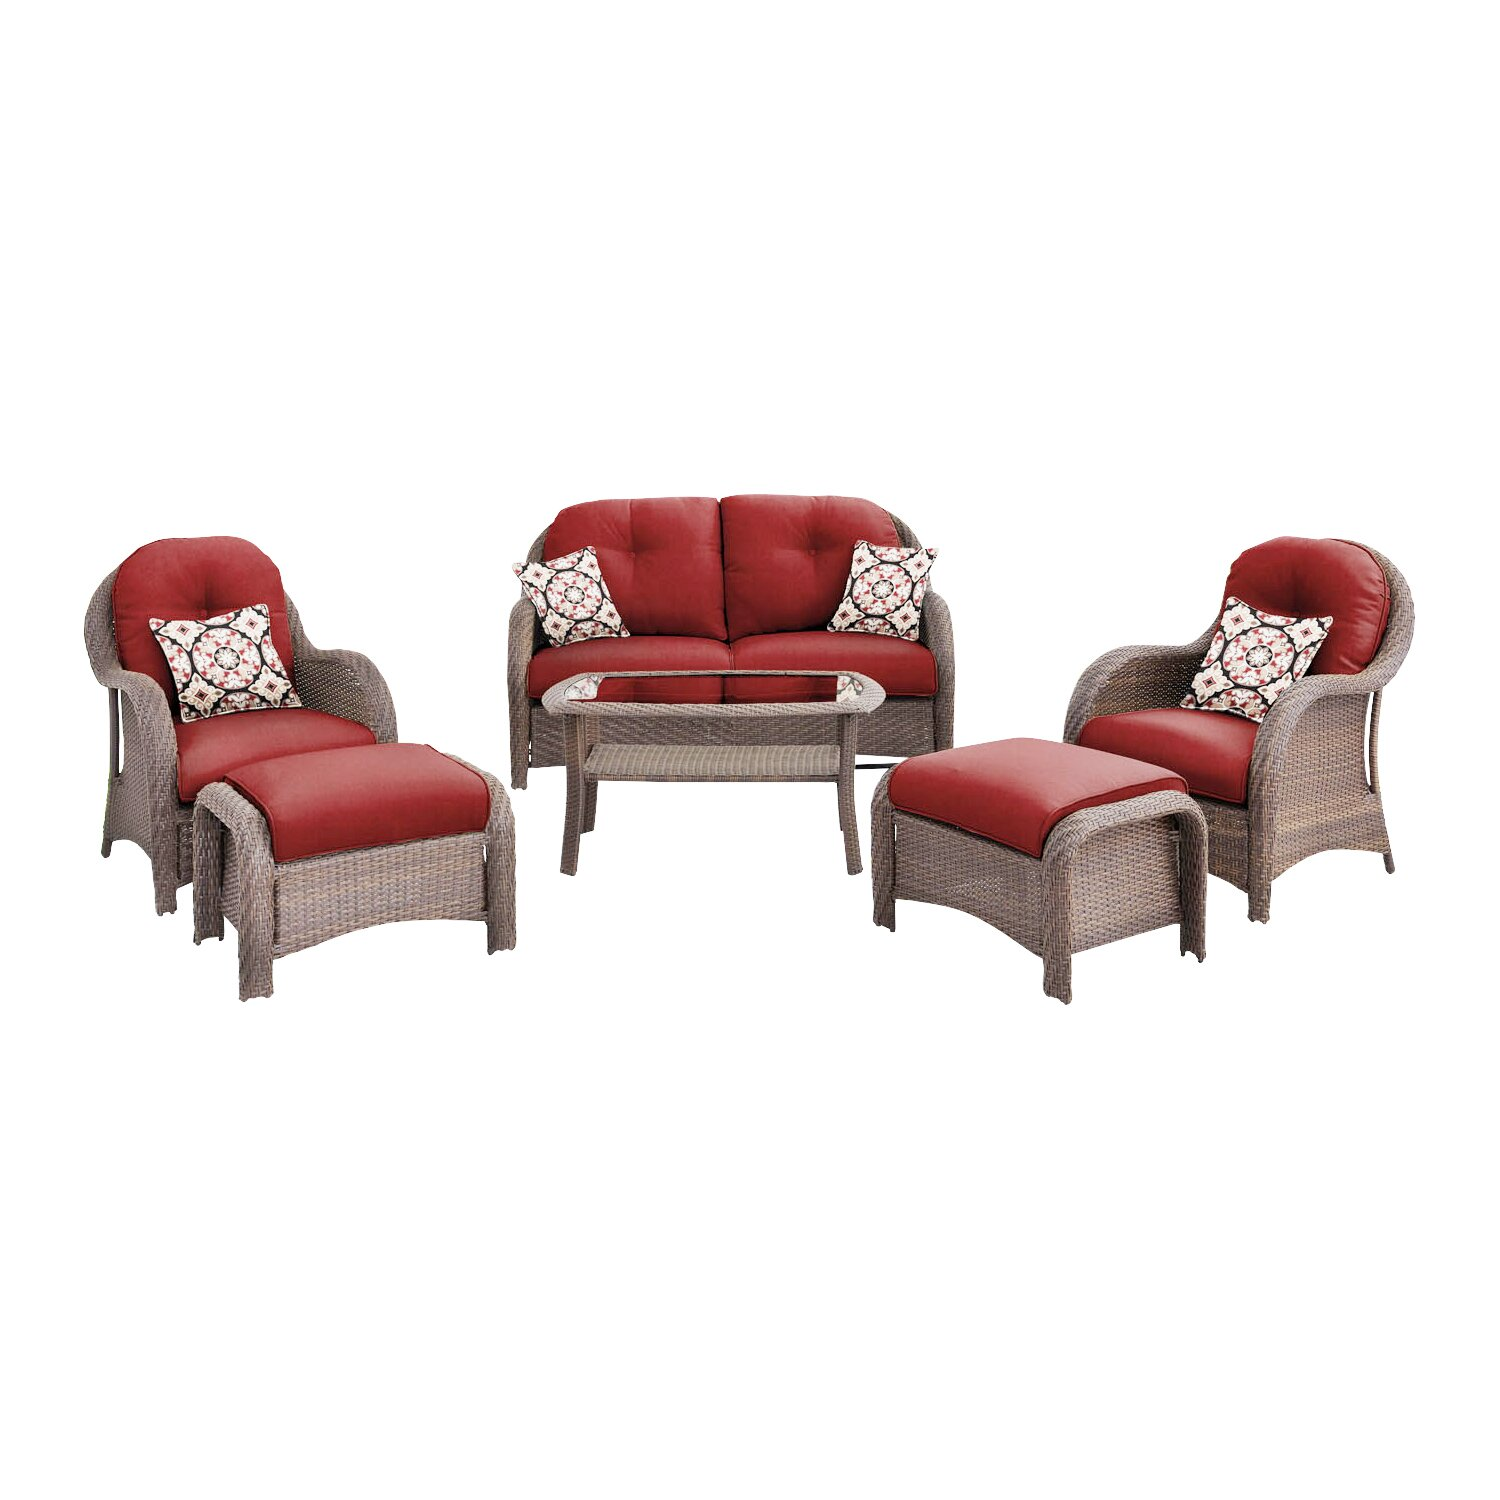 Seating Patio Furniture Covers likewise Wholesale Outdoor Furniture ...